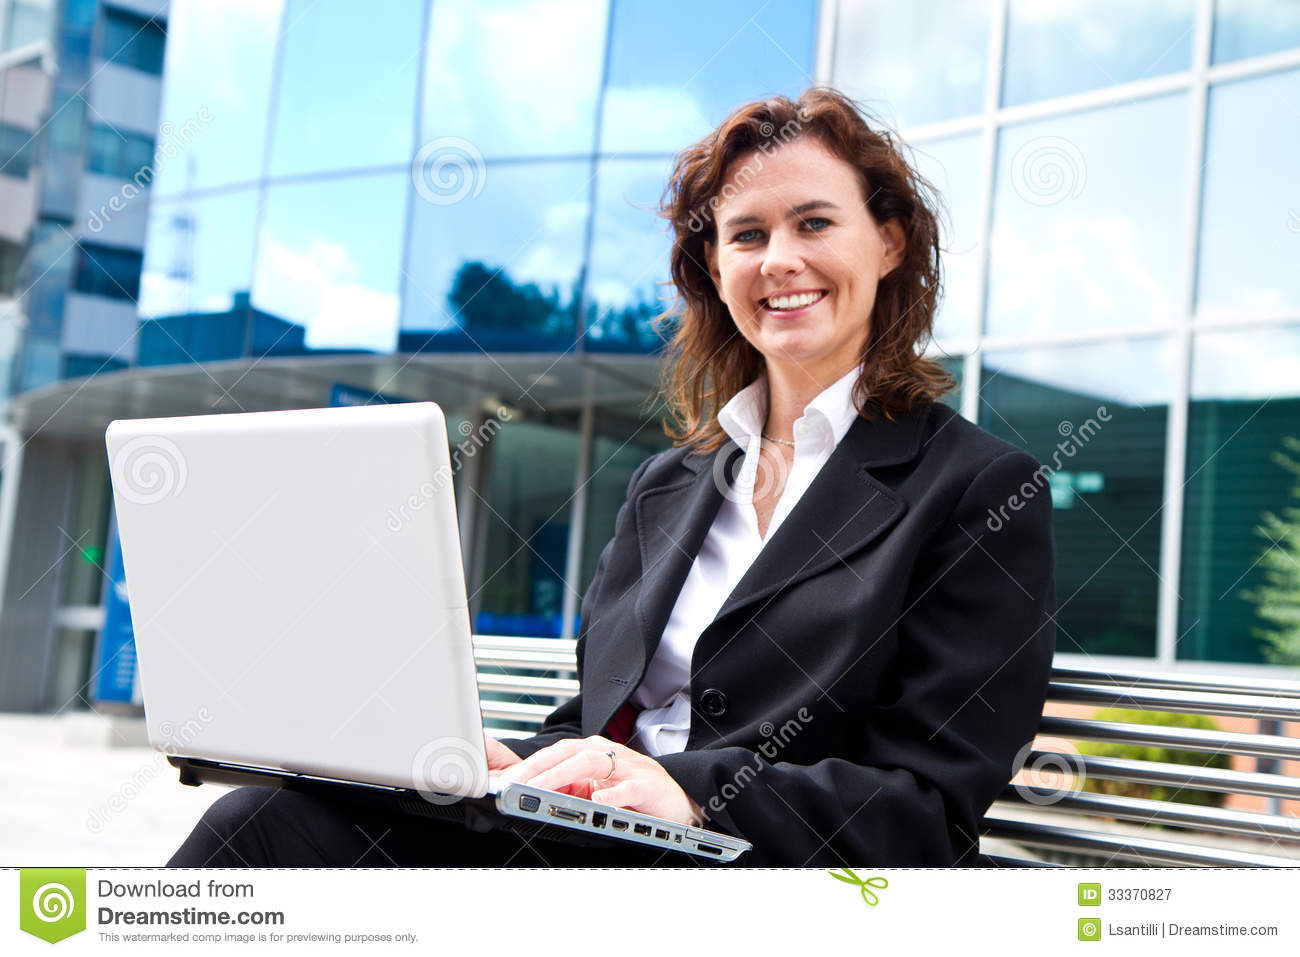 Career Woman Royalty Free Stock Photography - Image: 33370827